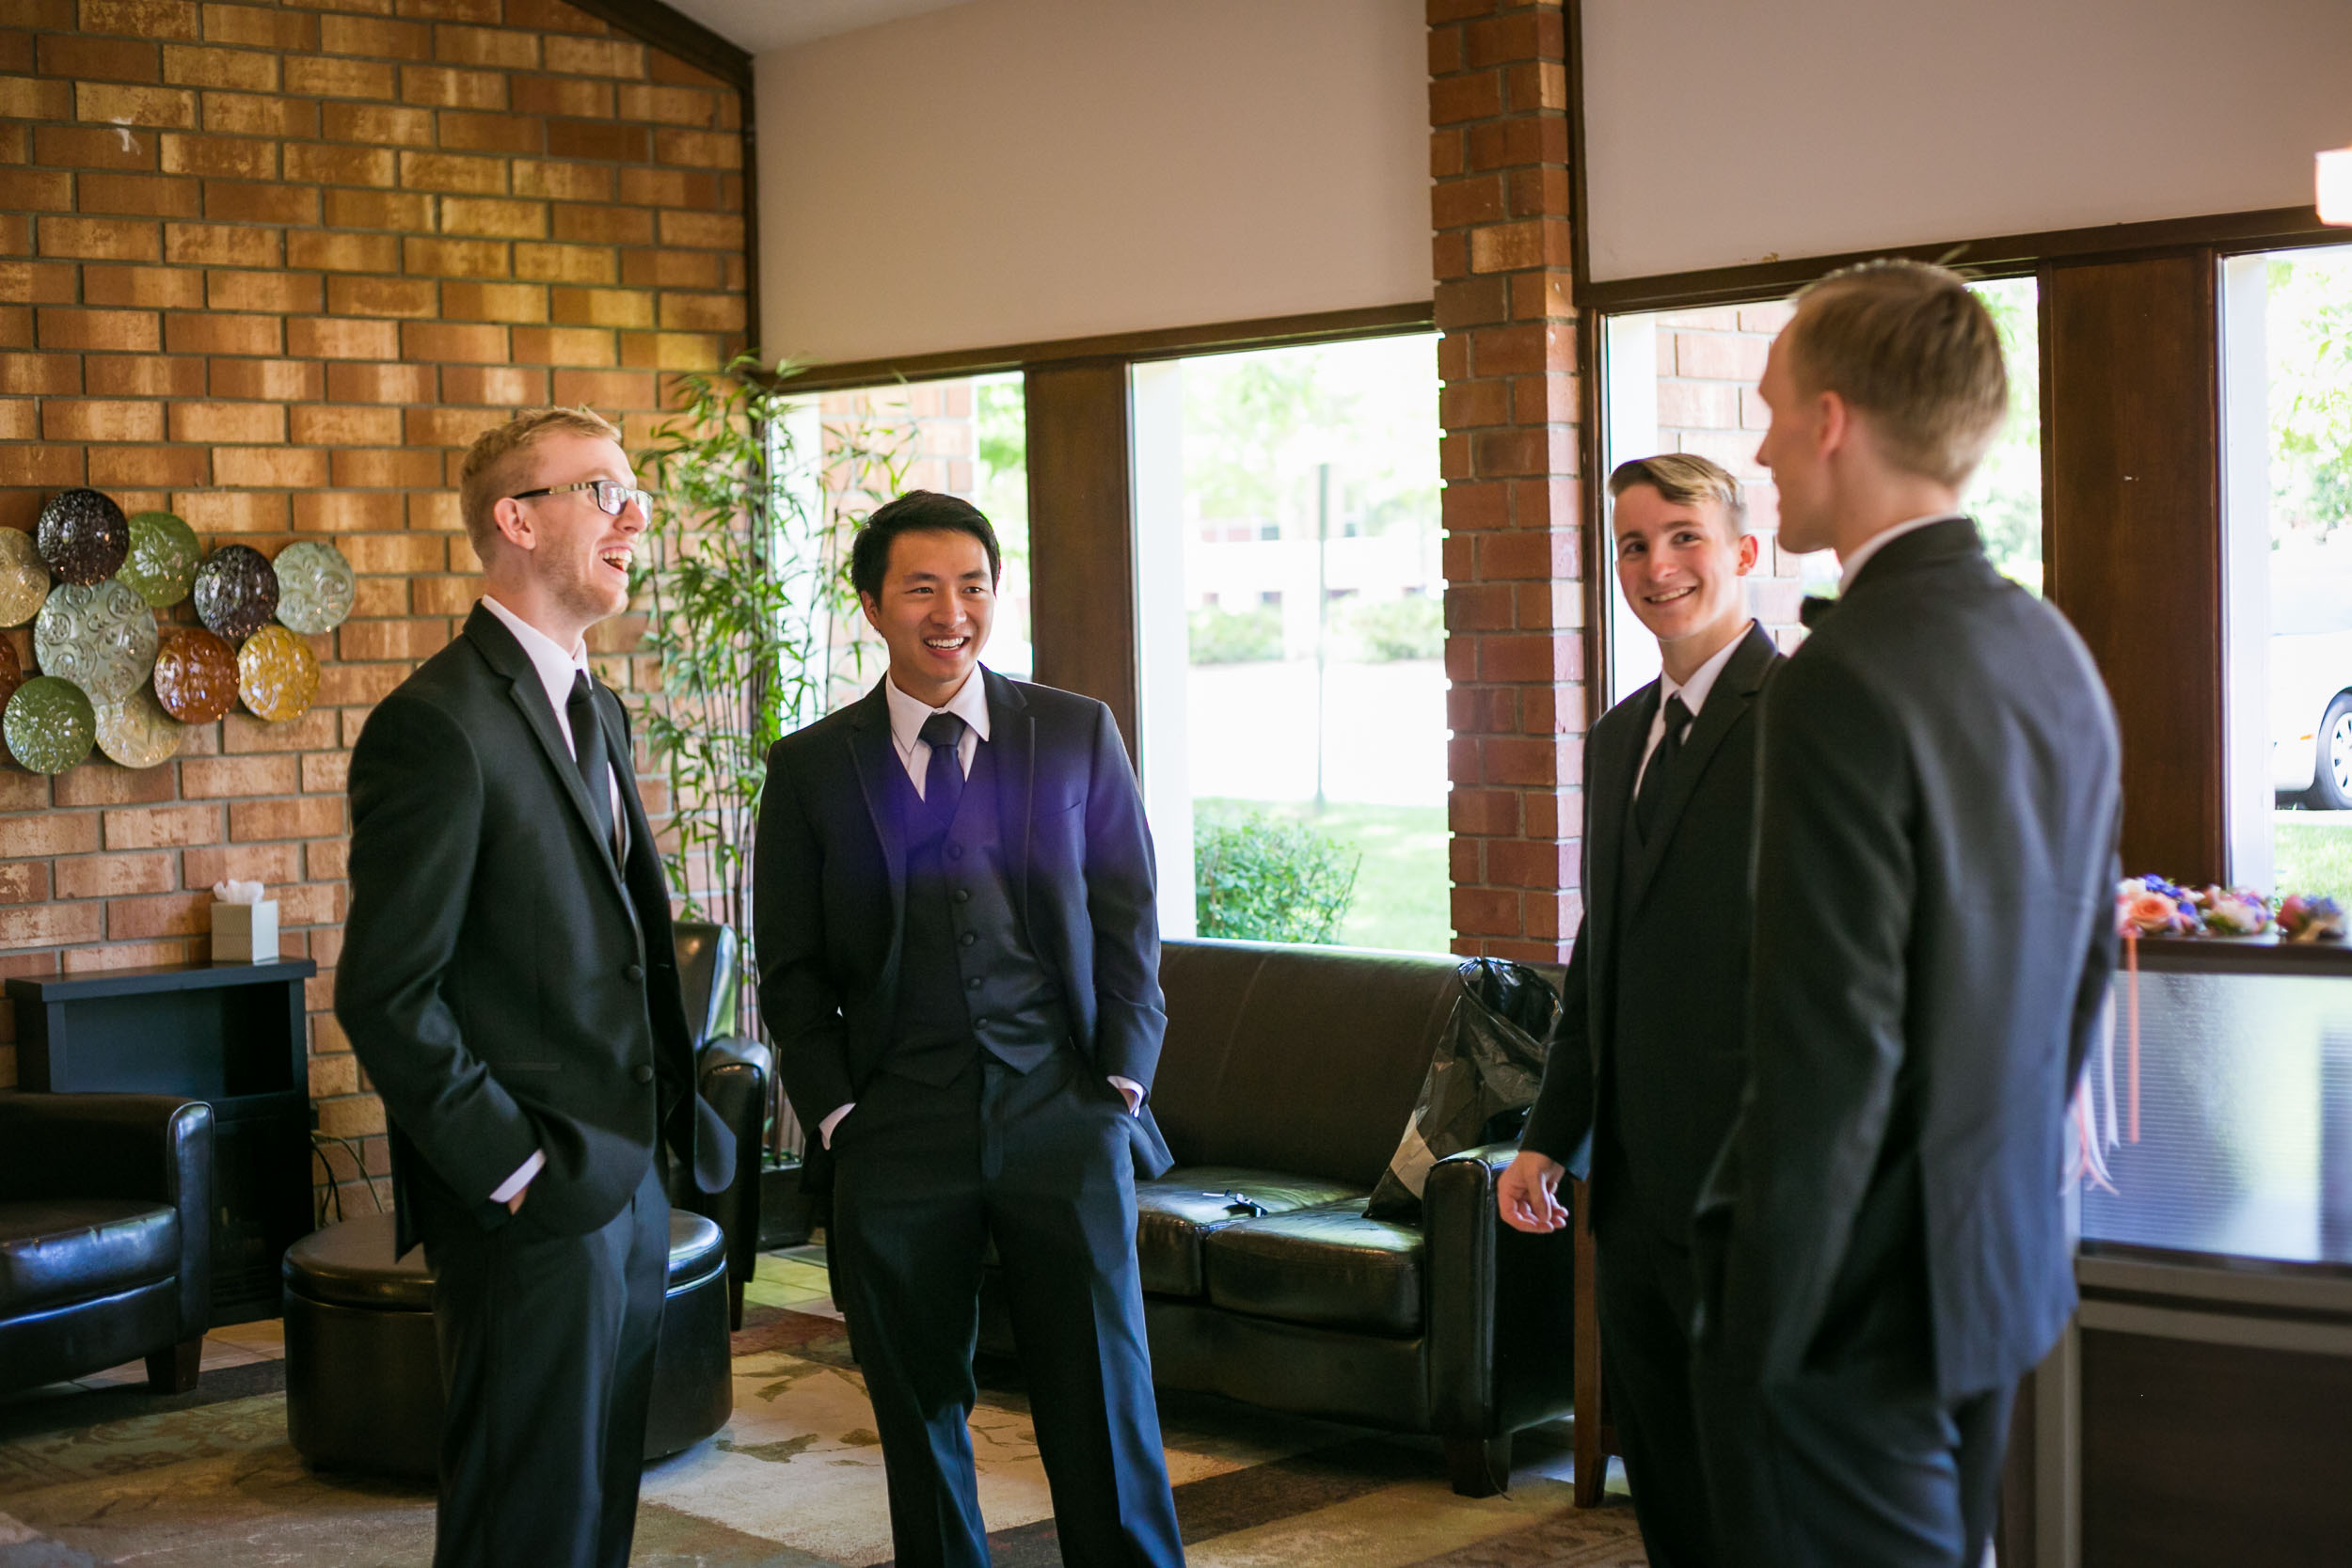 Raleigh Wedding Photographer   G. Lin Photography   Groomsmen standing in lobby and laughing